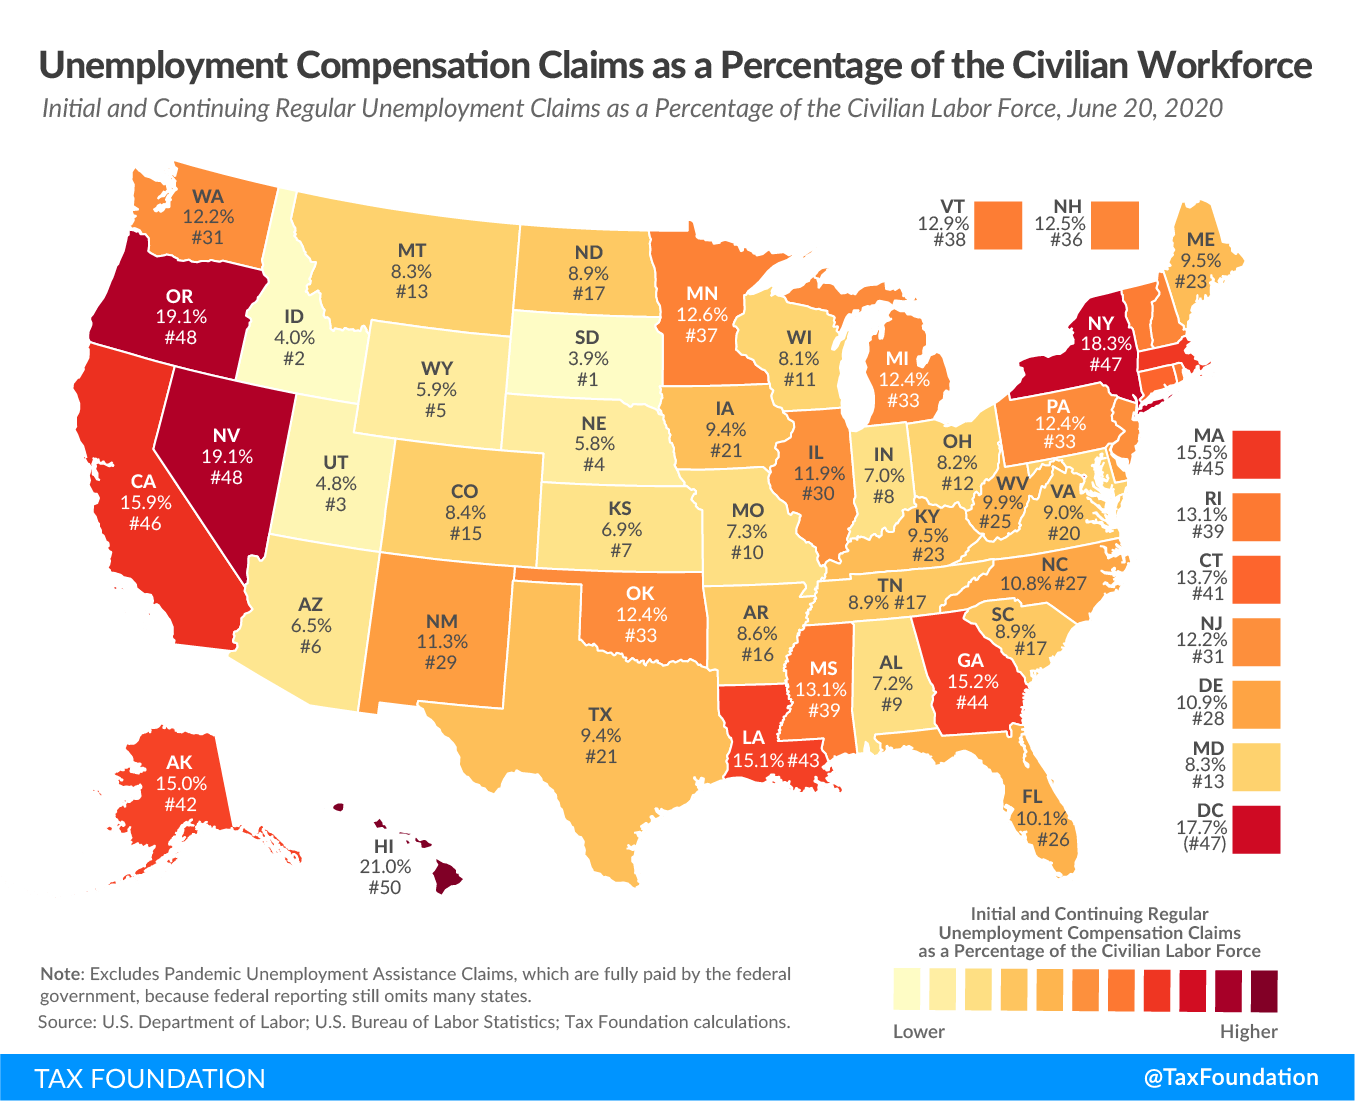 percentage of jobless claims in the united states, state unemployment rates, state unemployment insurance claims, state unemployment claims, unemployment compensation claims, unemployment insurance claims, unemployment claims by state